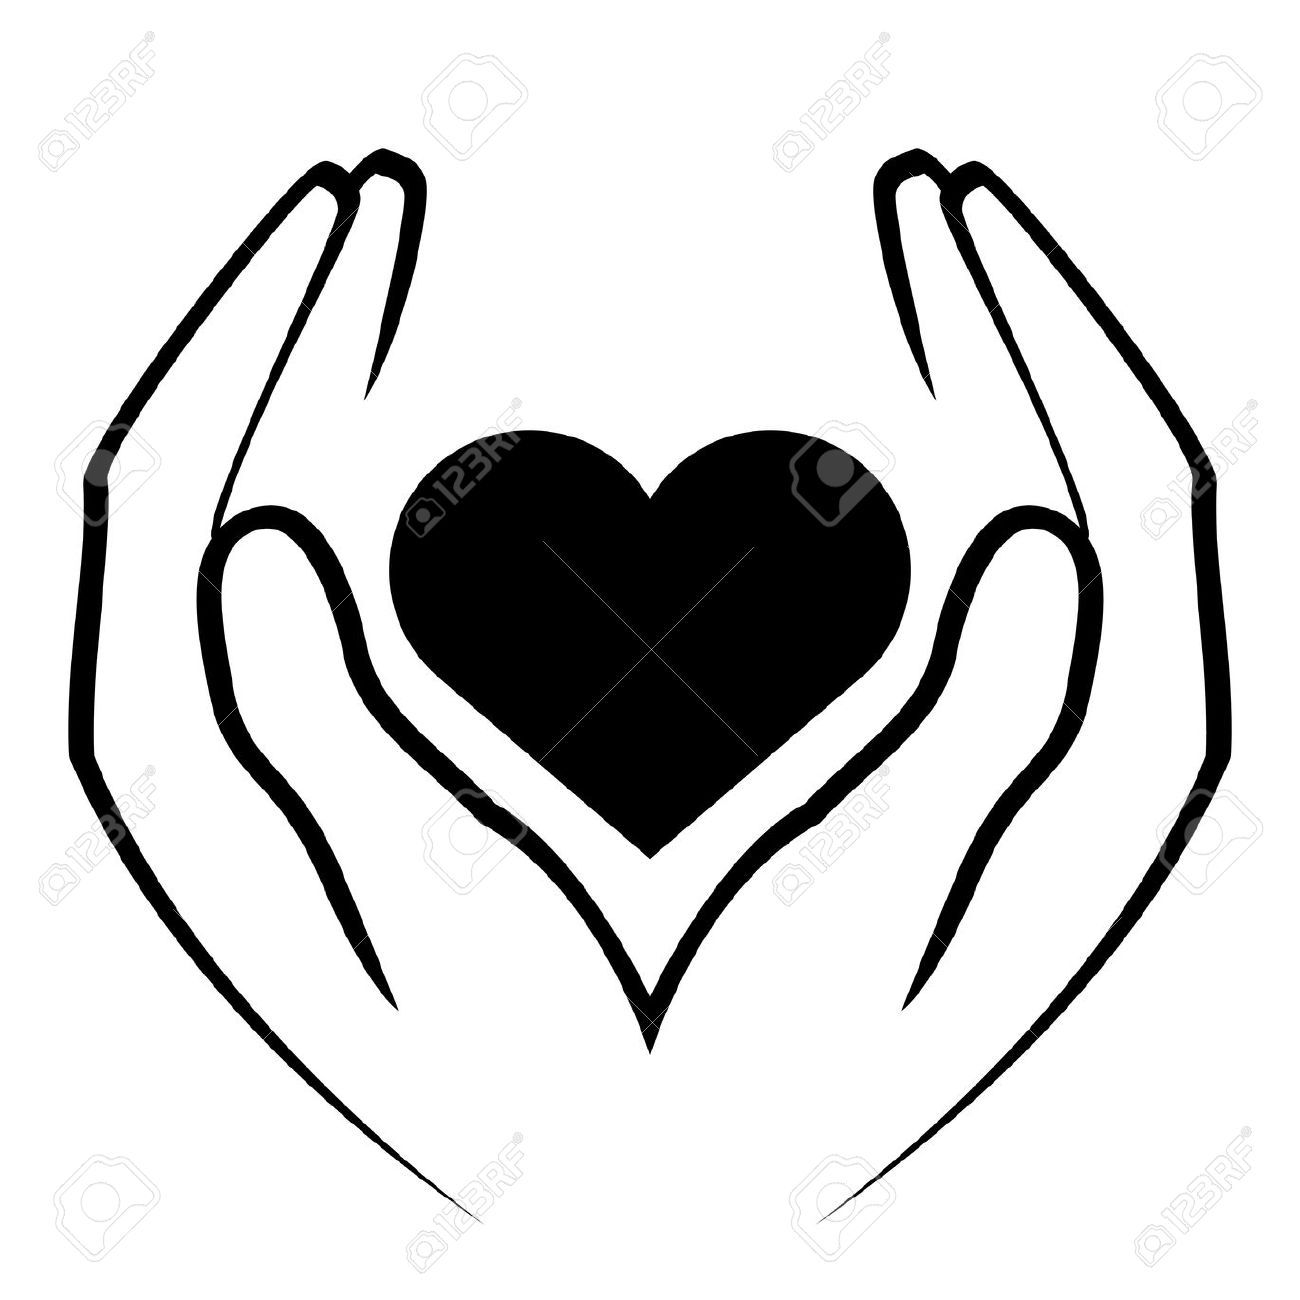 1300x1300 Hand Heart Clipart Things Of Interest Hands Holding Heart